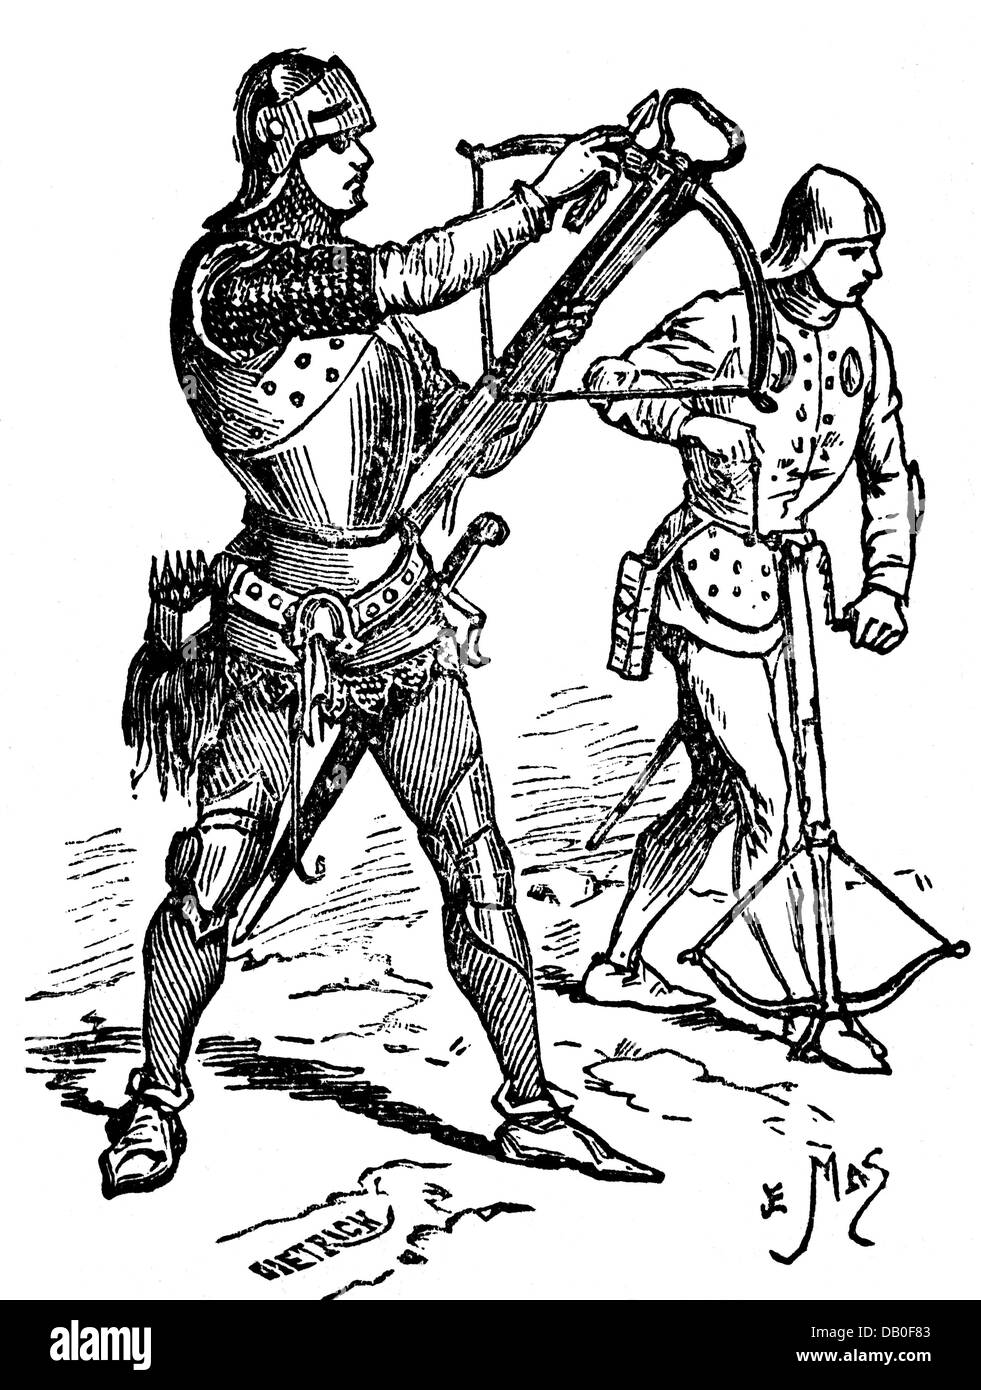 military, Middle Ages, infantry, French crossbowmen, 15th century, spanning of the crossbow, wood engraving, 19th - Stock Image